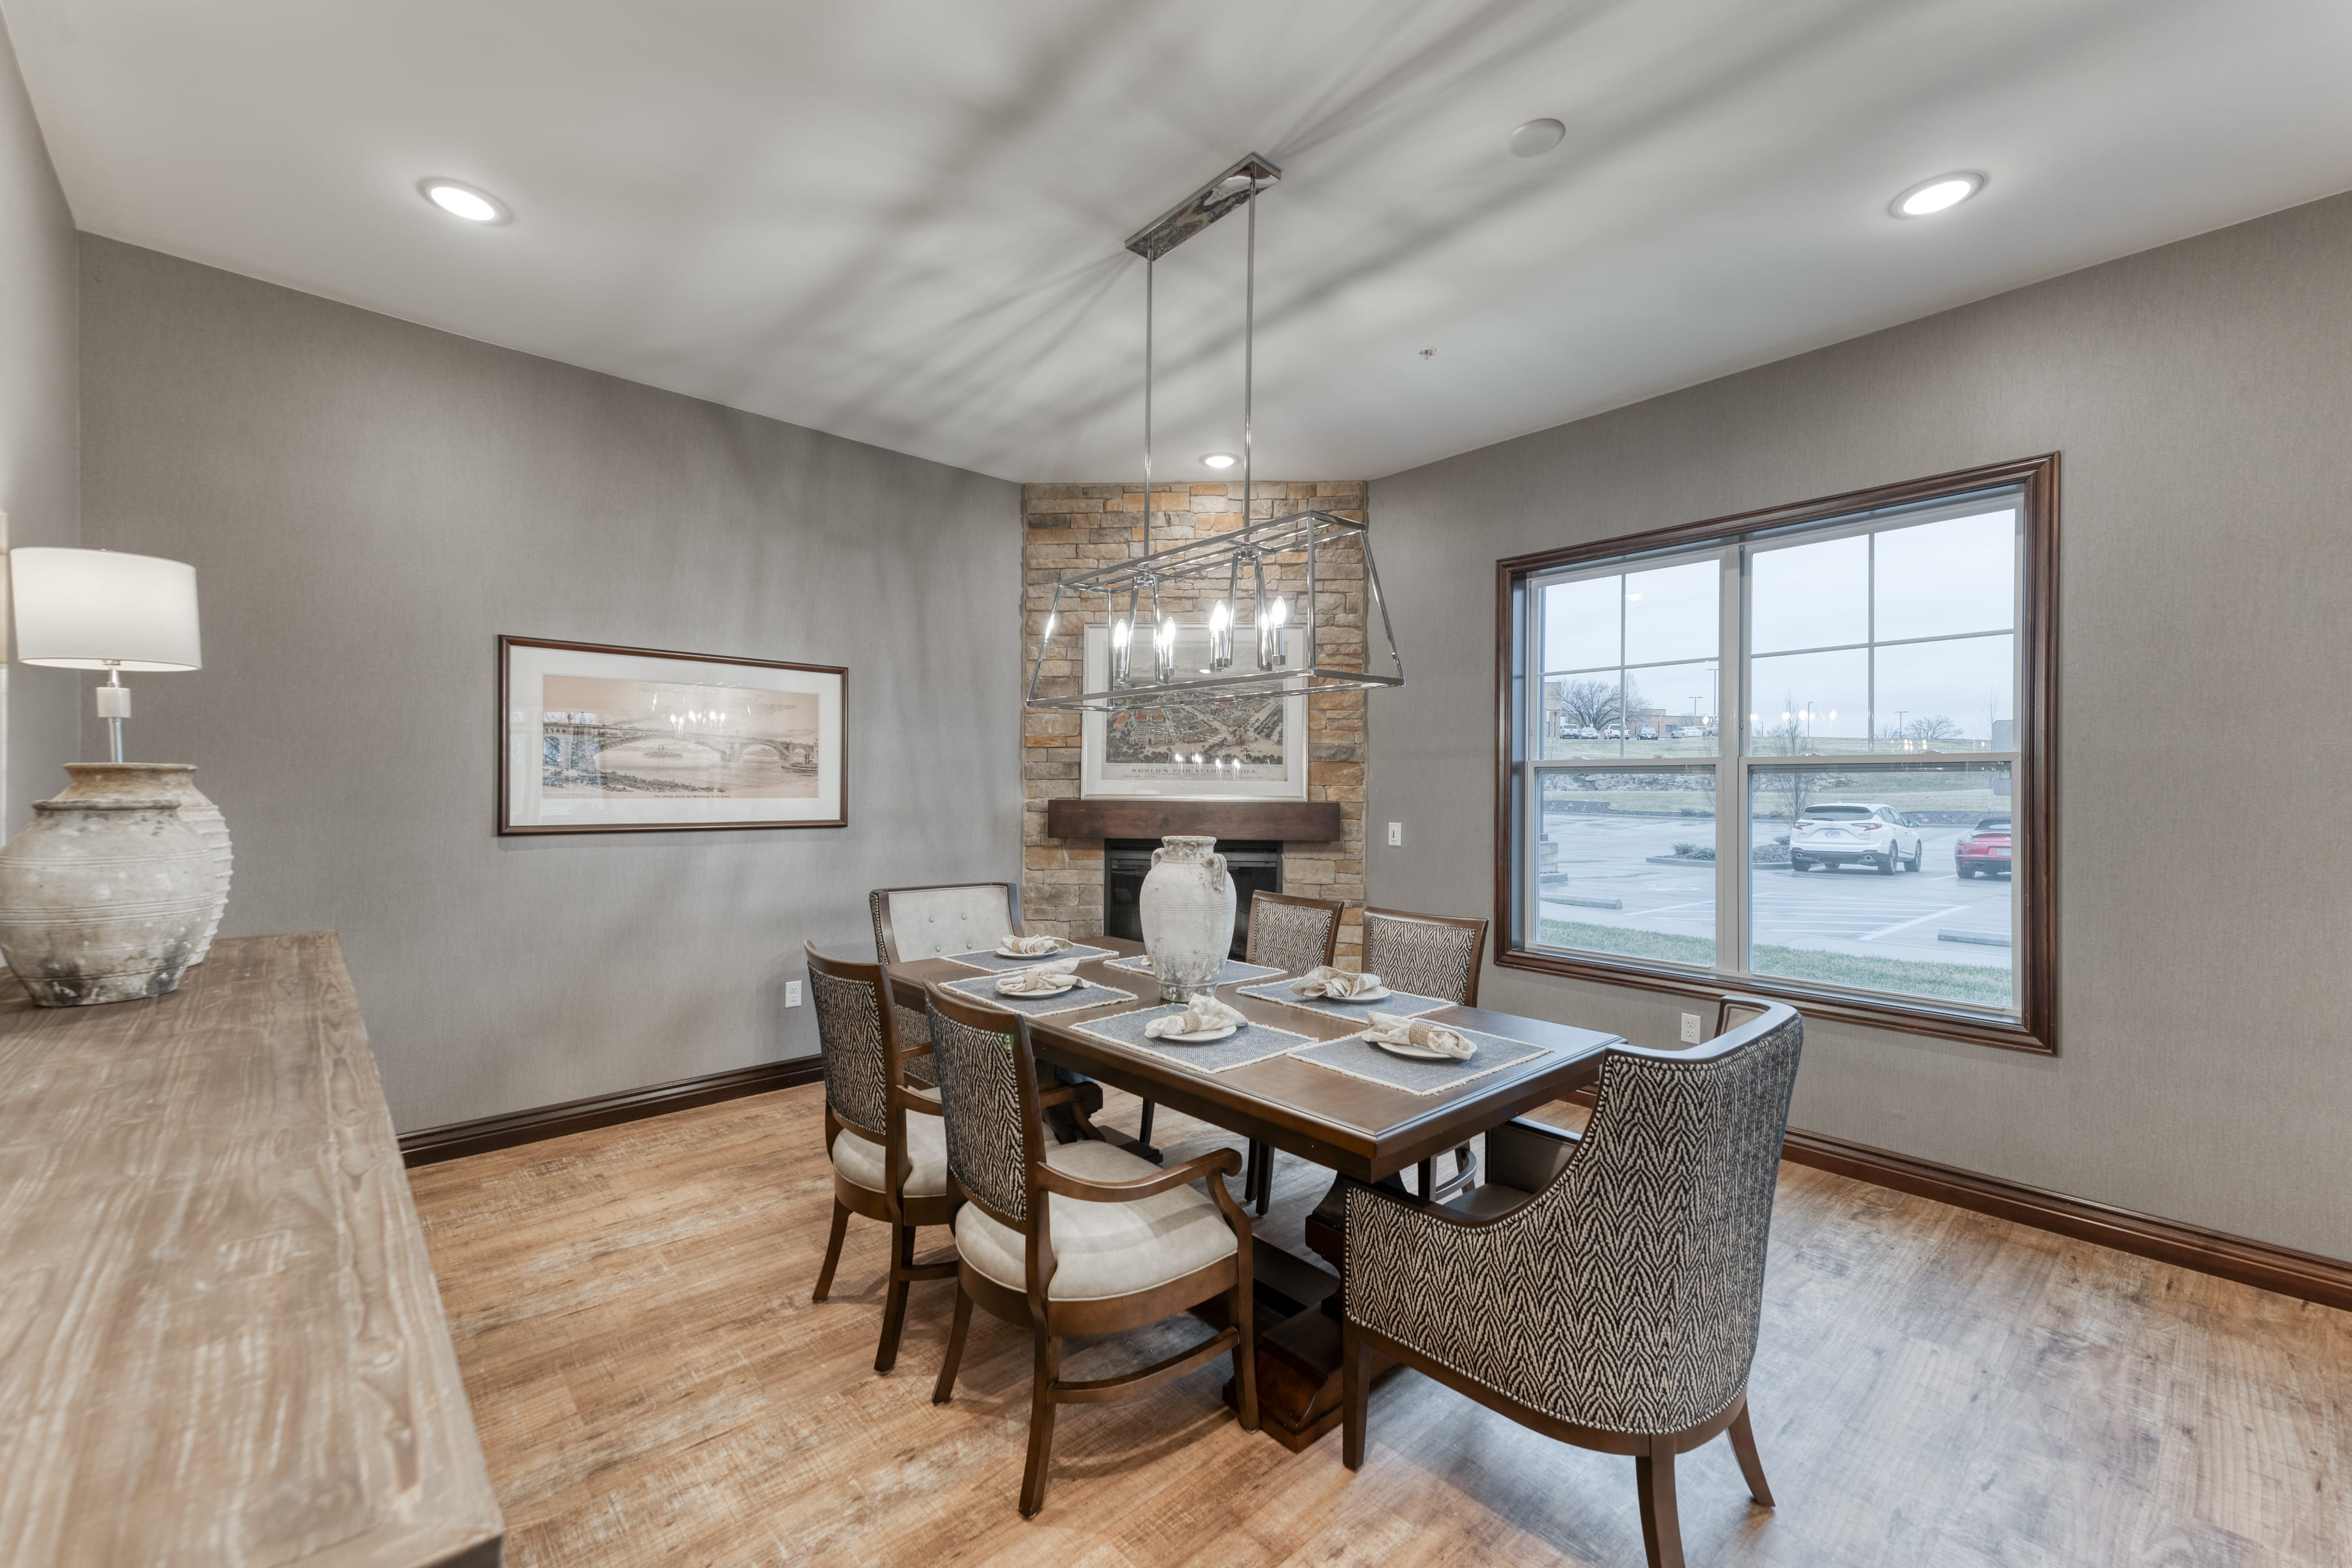 A stone fireplace adds ambiance and warmth to this dining space